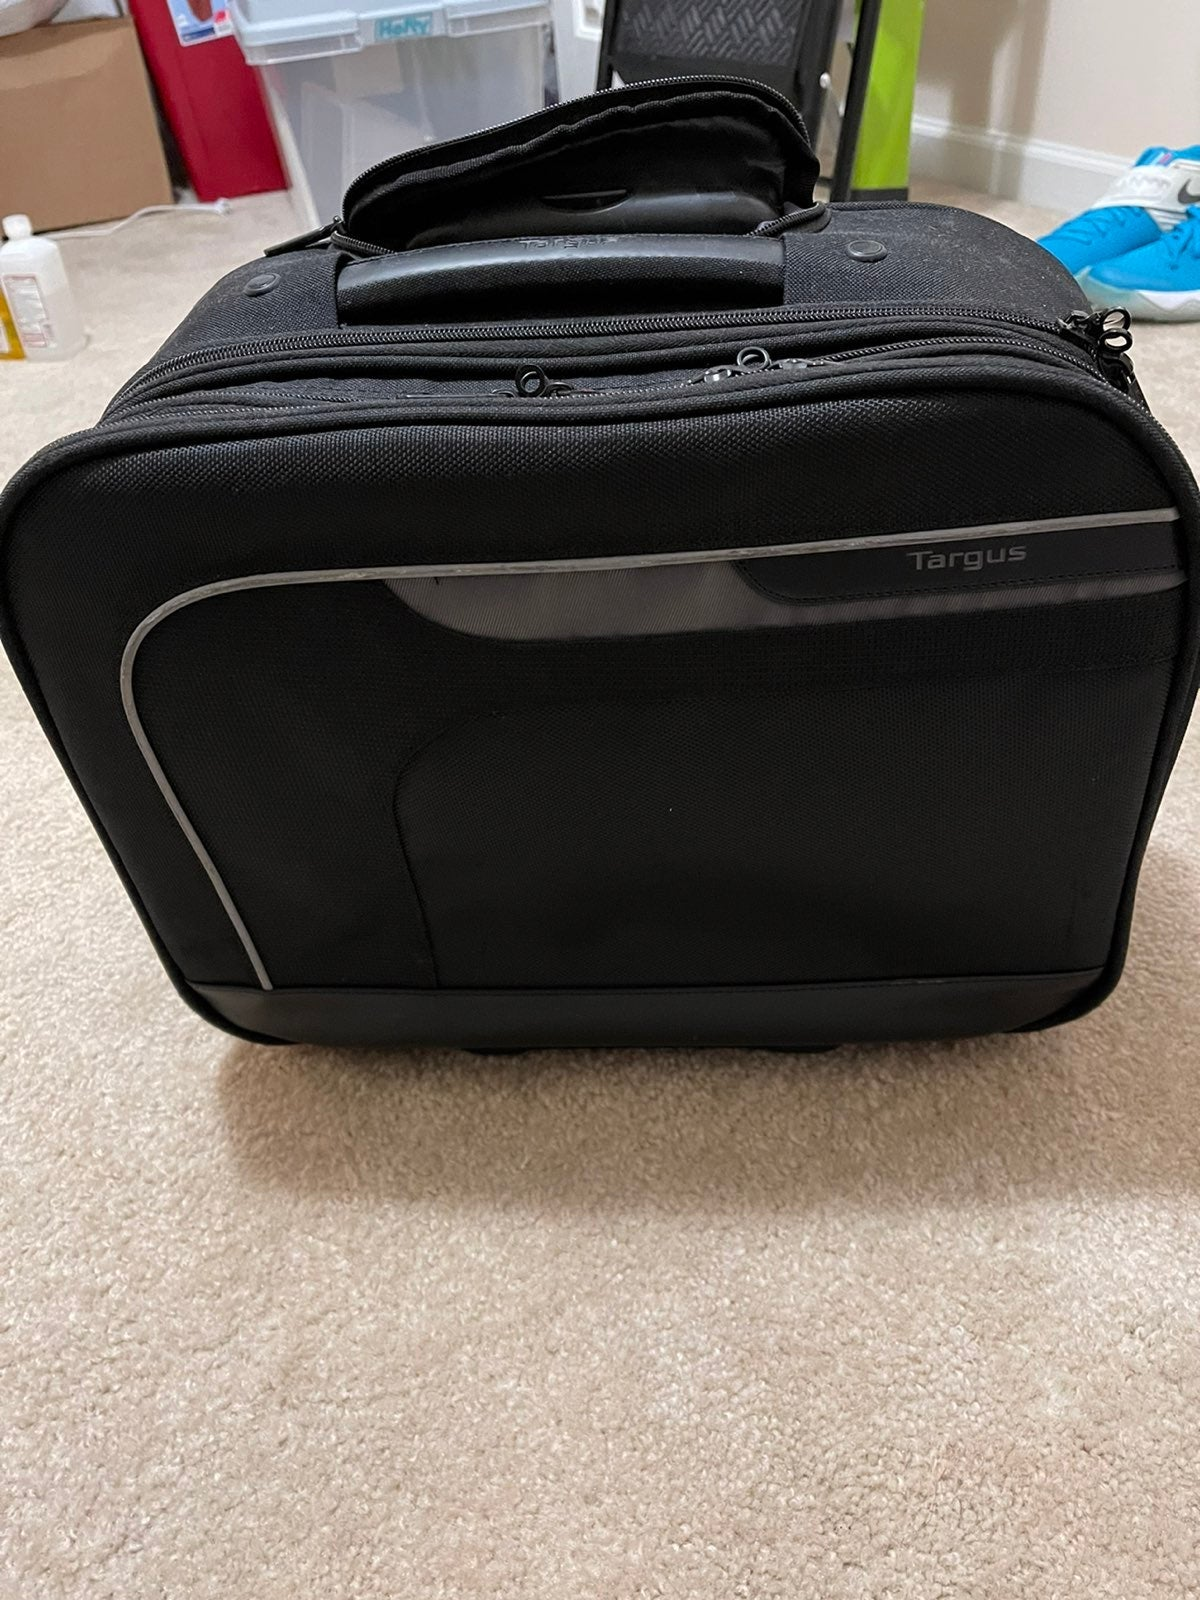 Targus Laptop Roller Bag